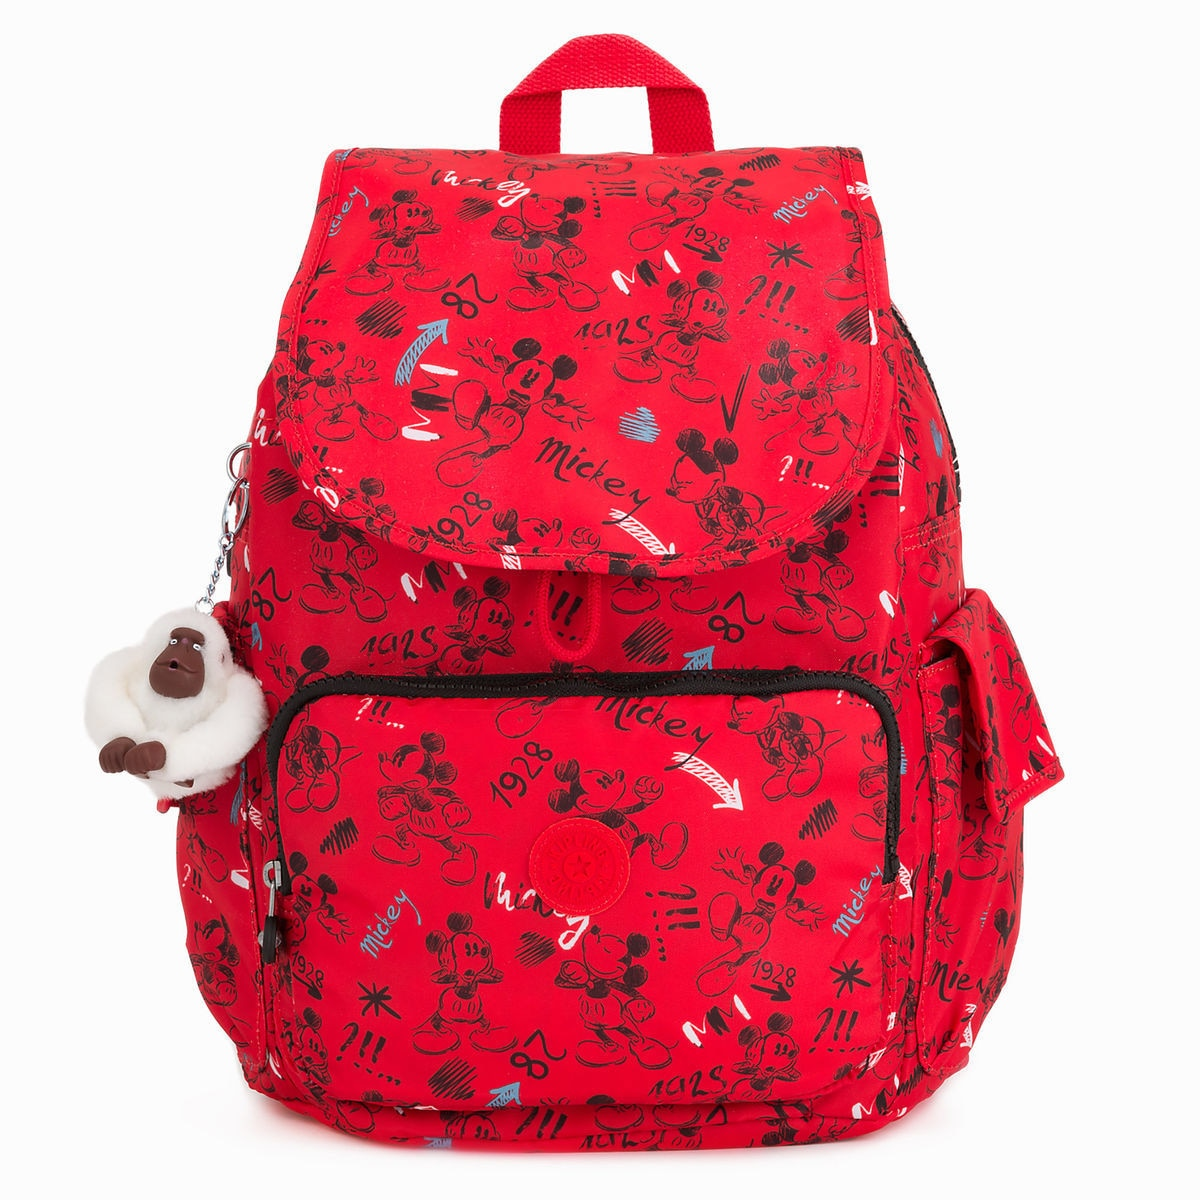 24375ca6e64f Product Image of Mickey Mouse Sketch Art Backpack by Kipling   1